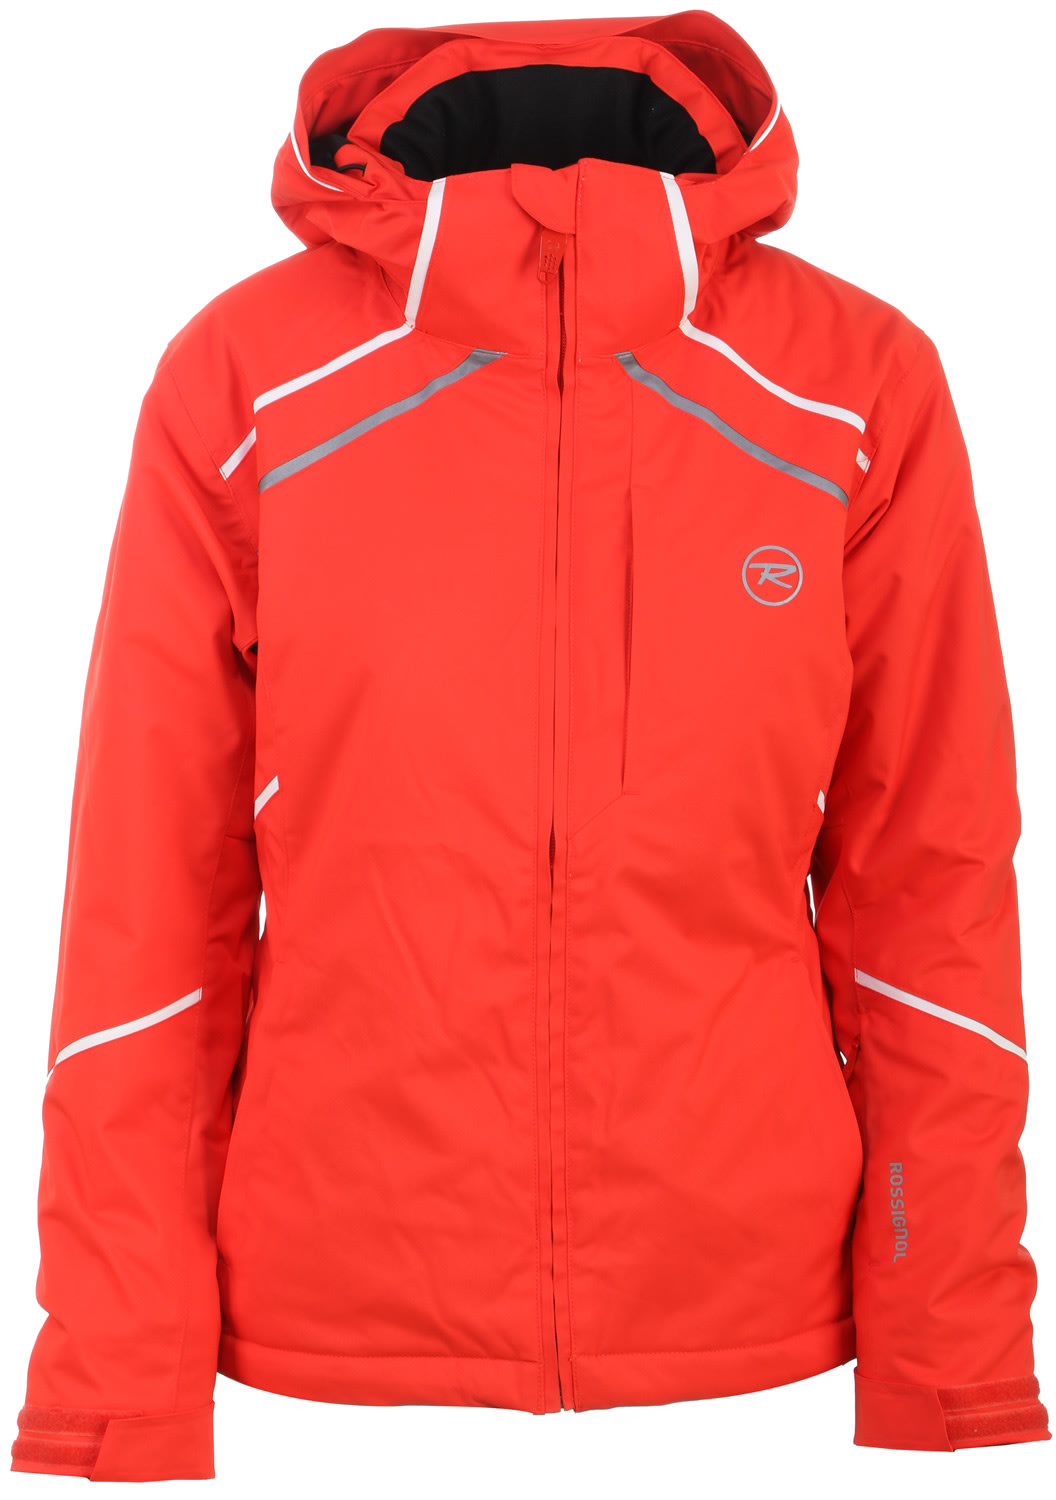 Discover the best Girls' Skiing Jackets in Best Sellers. Find the top most popular items in Amazon Sports & Outdoors Best Sellers.